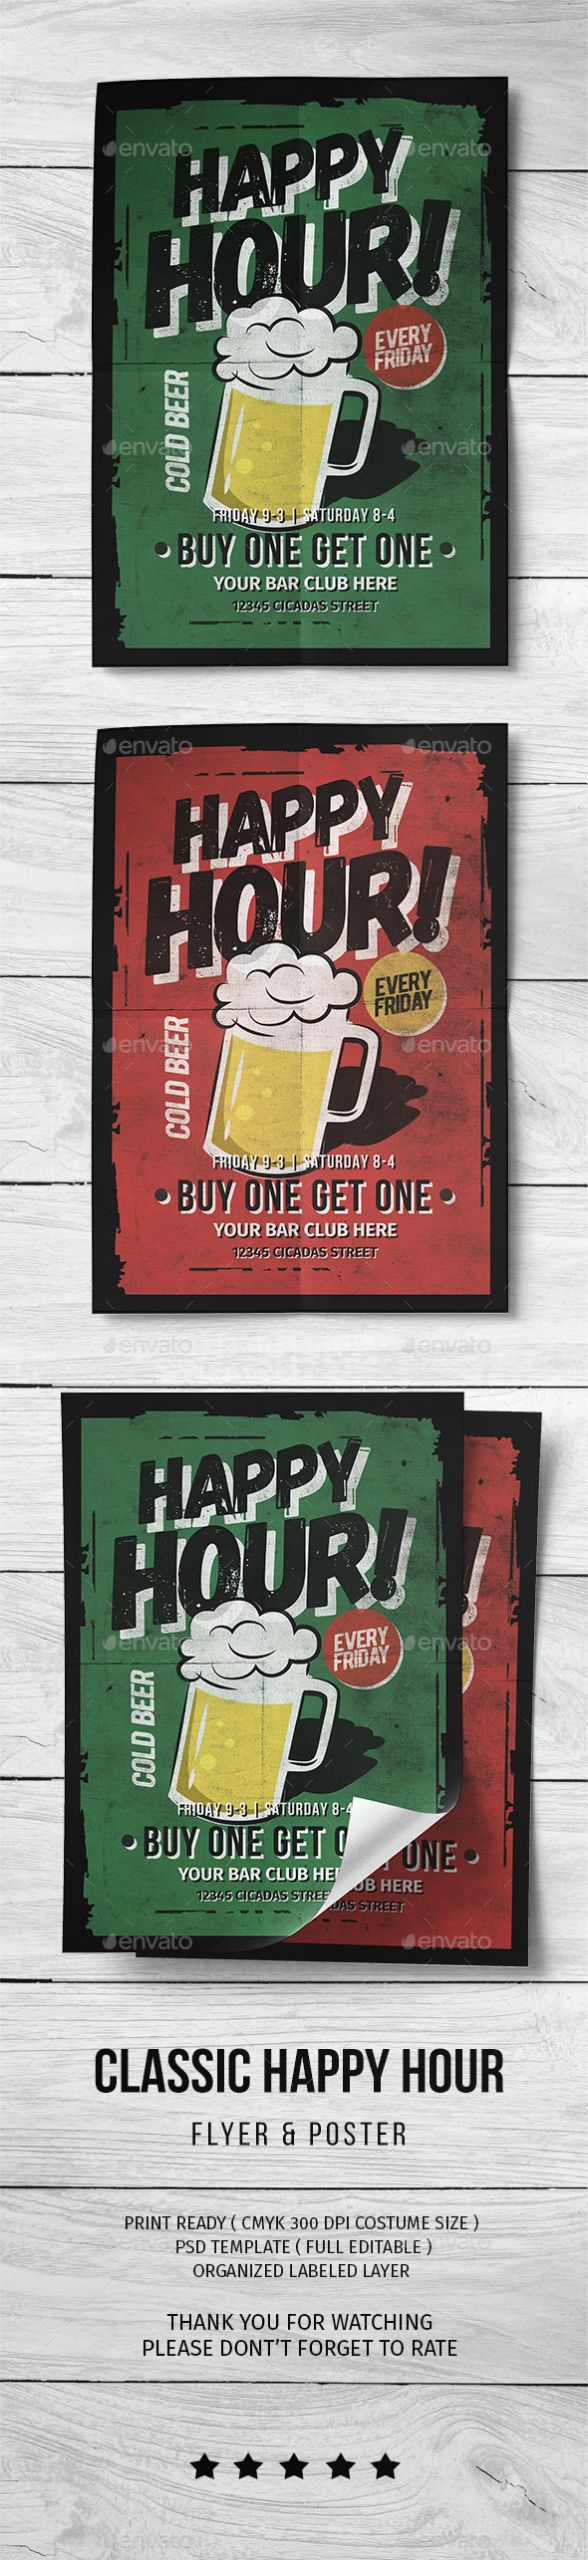 Happy Hour Menu Template Best Of Classic Happy Hour Flyer by Lilynthesweetpea